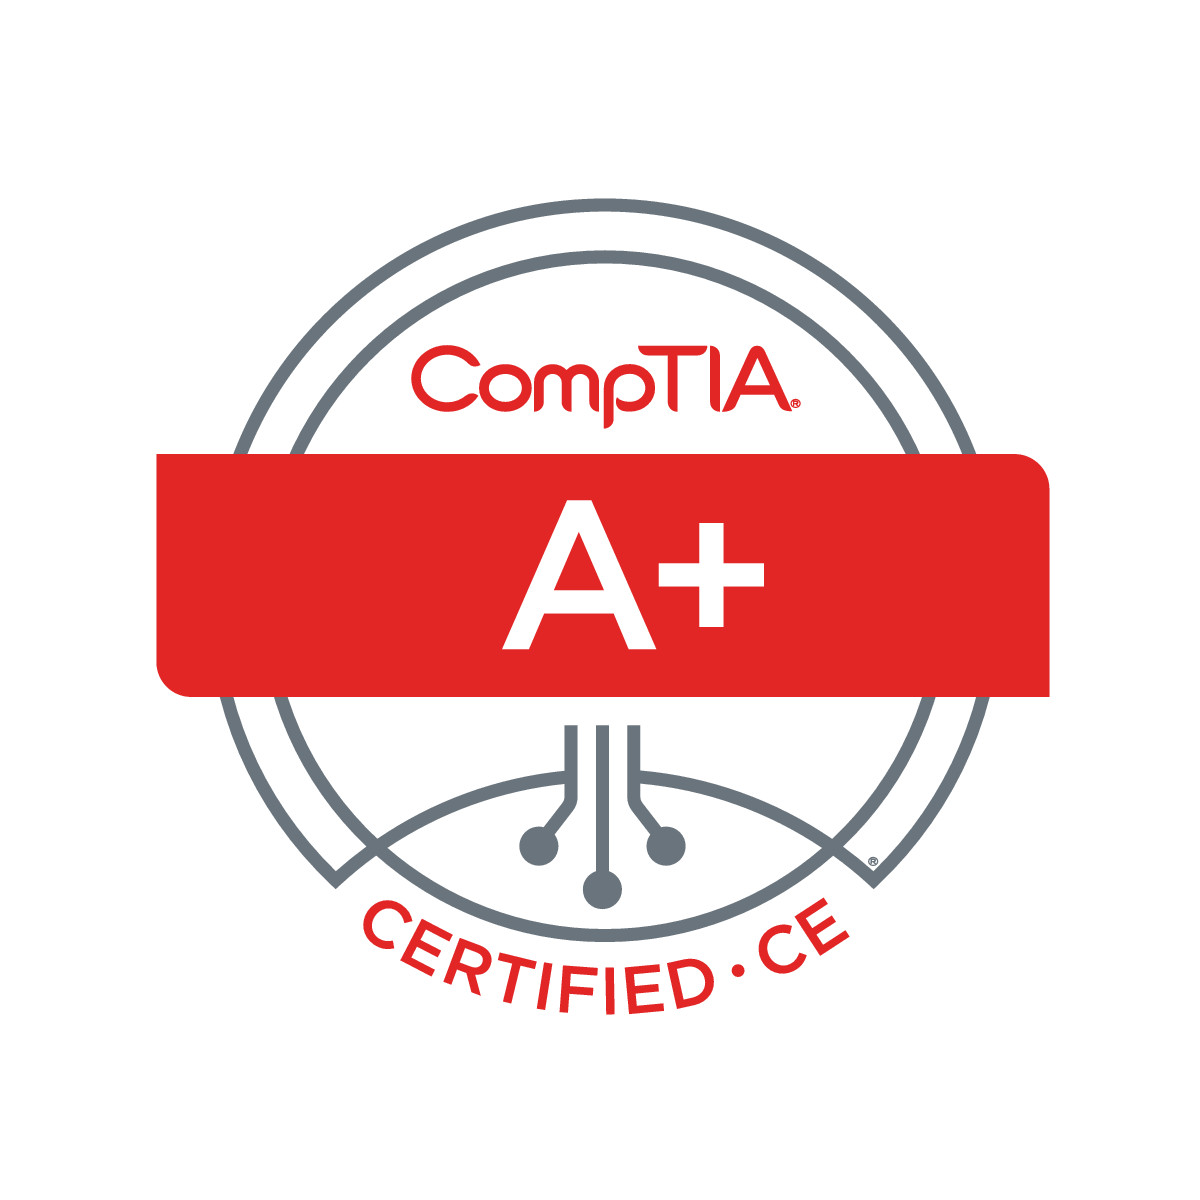 Official CompTIA A+ Certified Logo